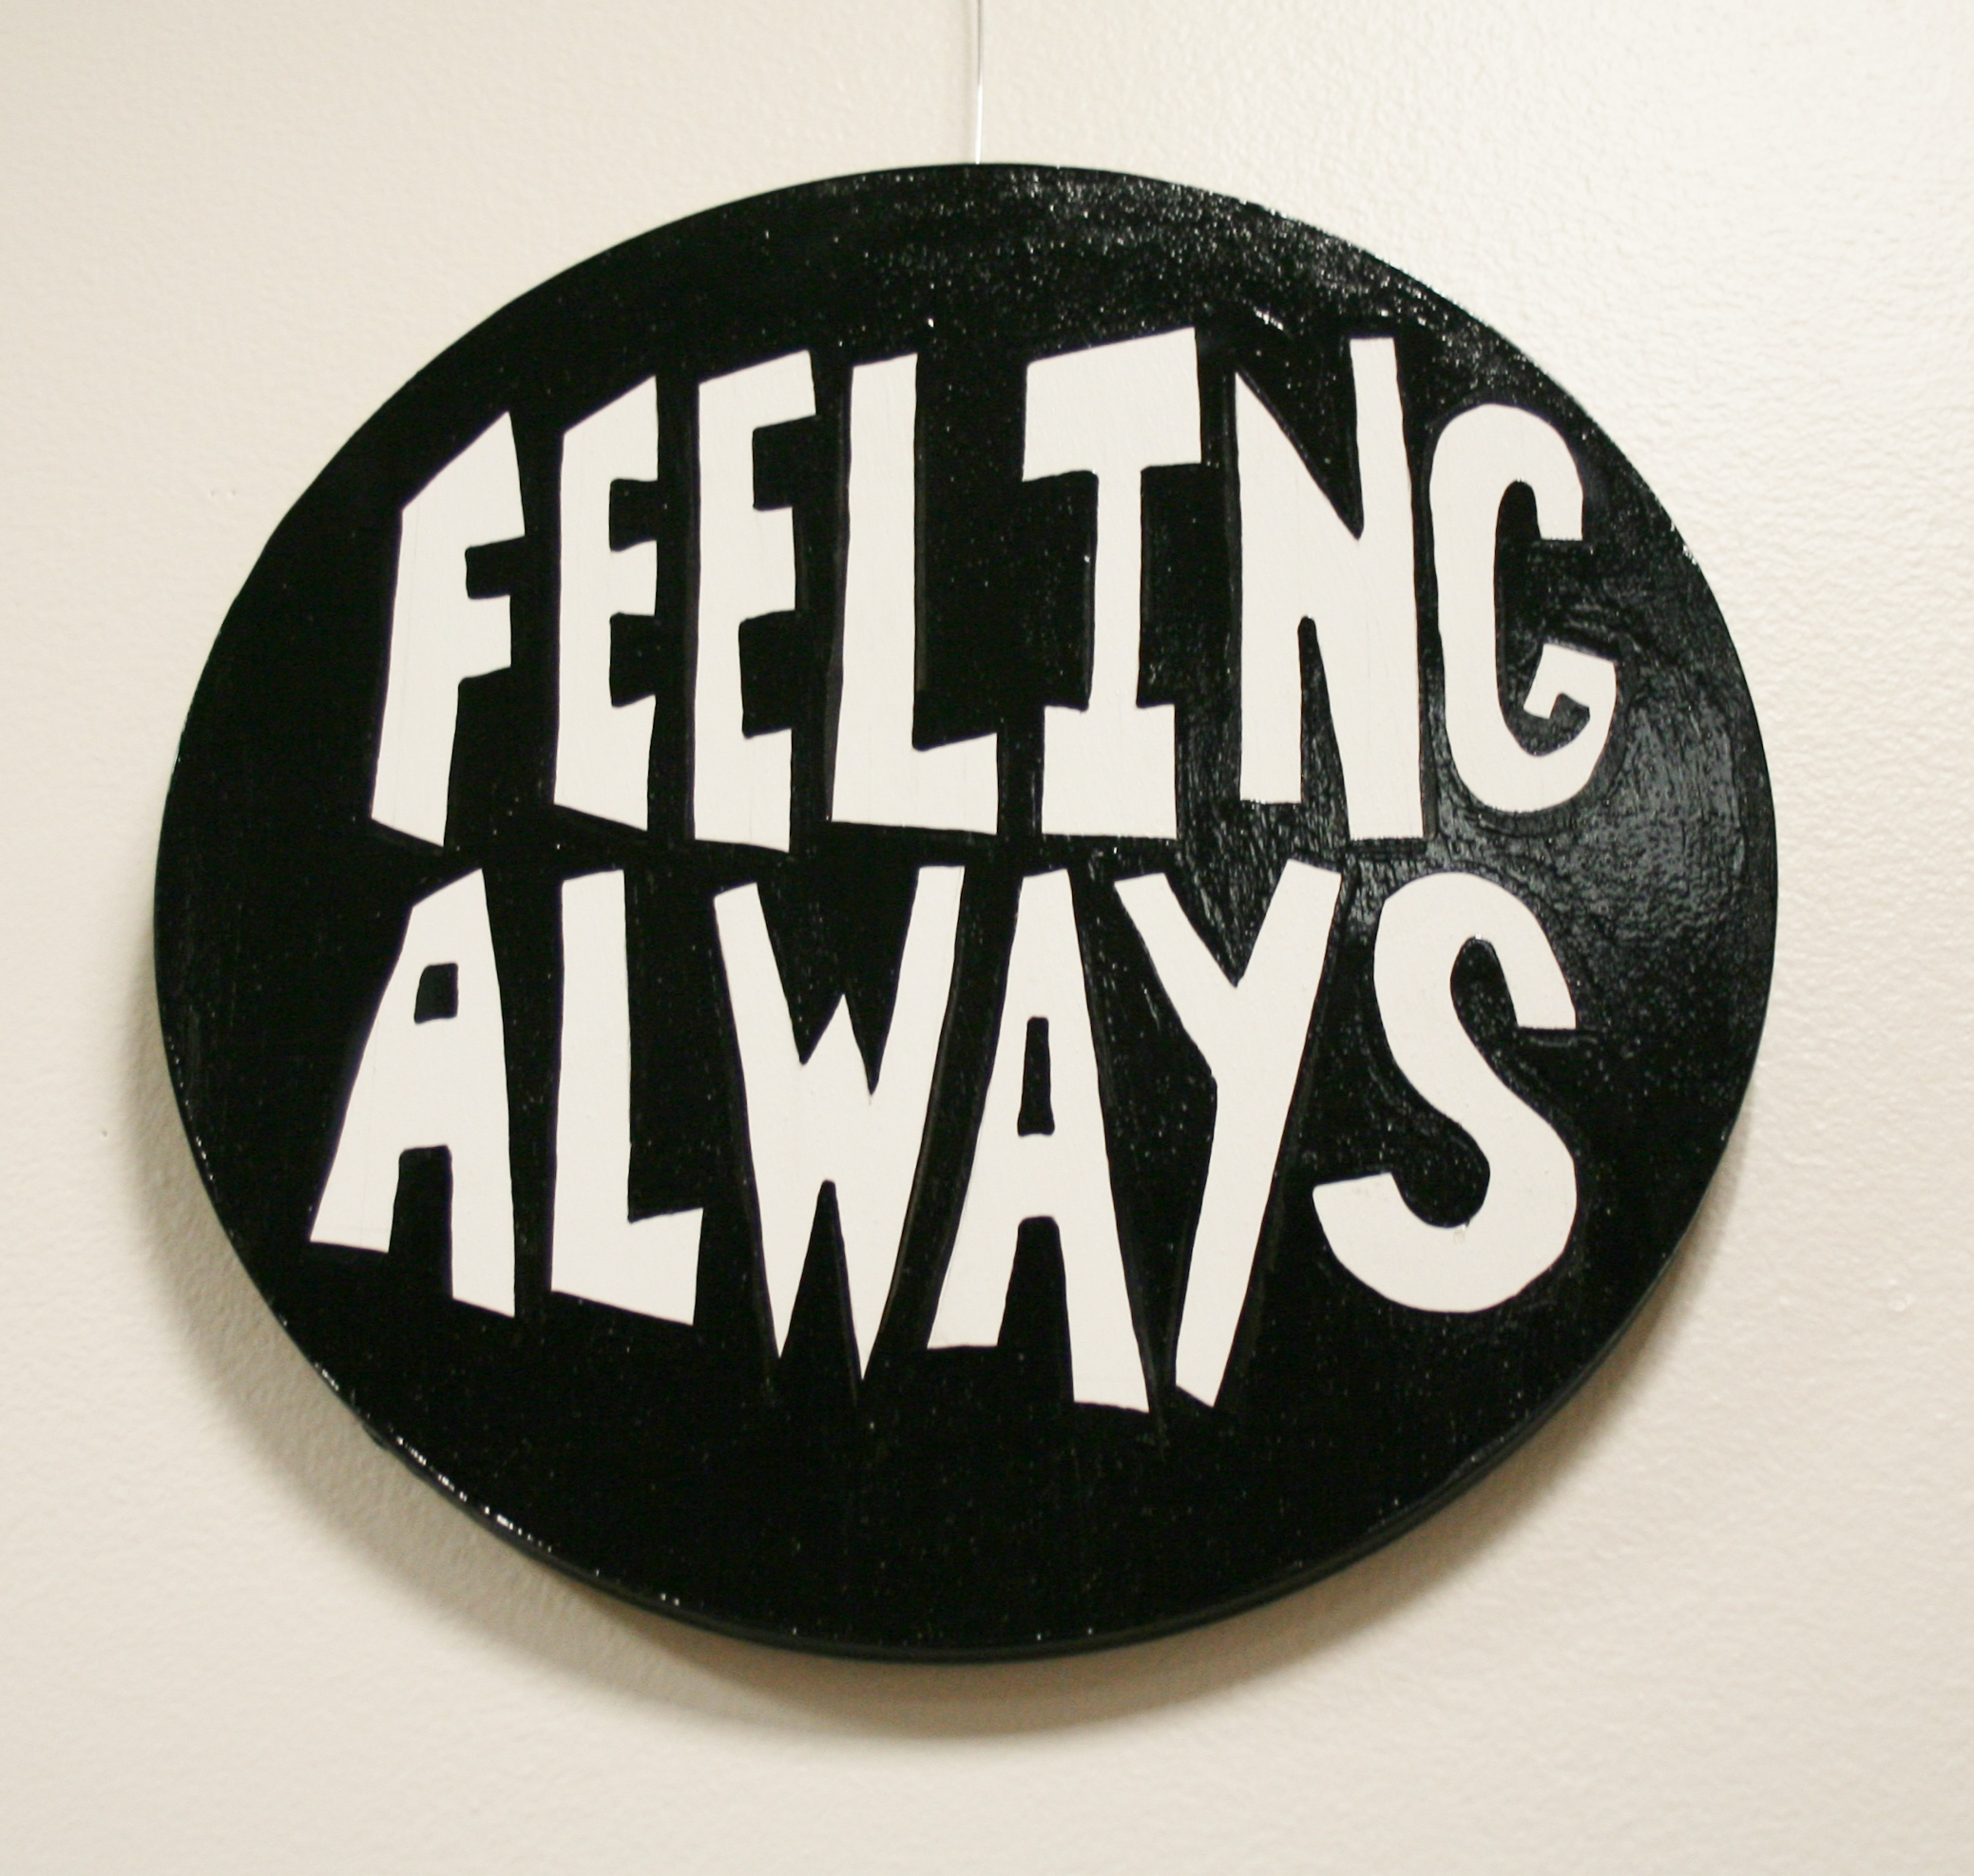 "Round wall work reading, ""Feeling always."" in white letters against a black background"